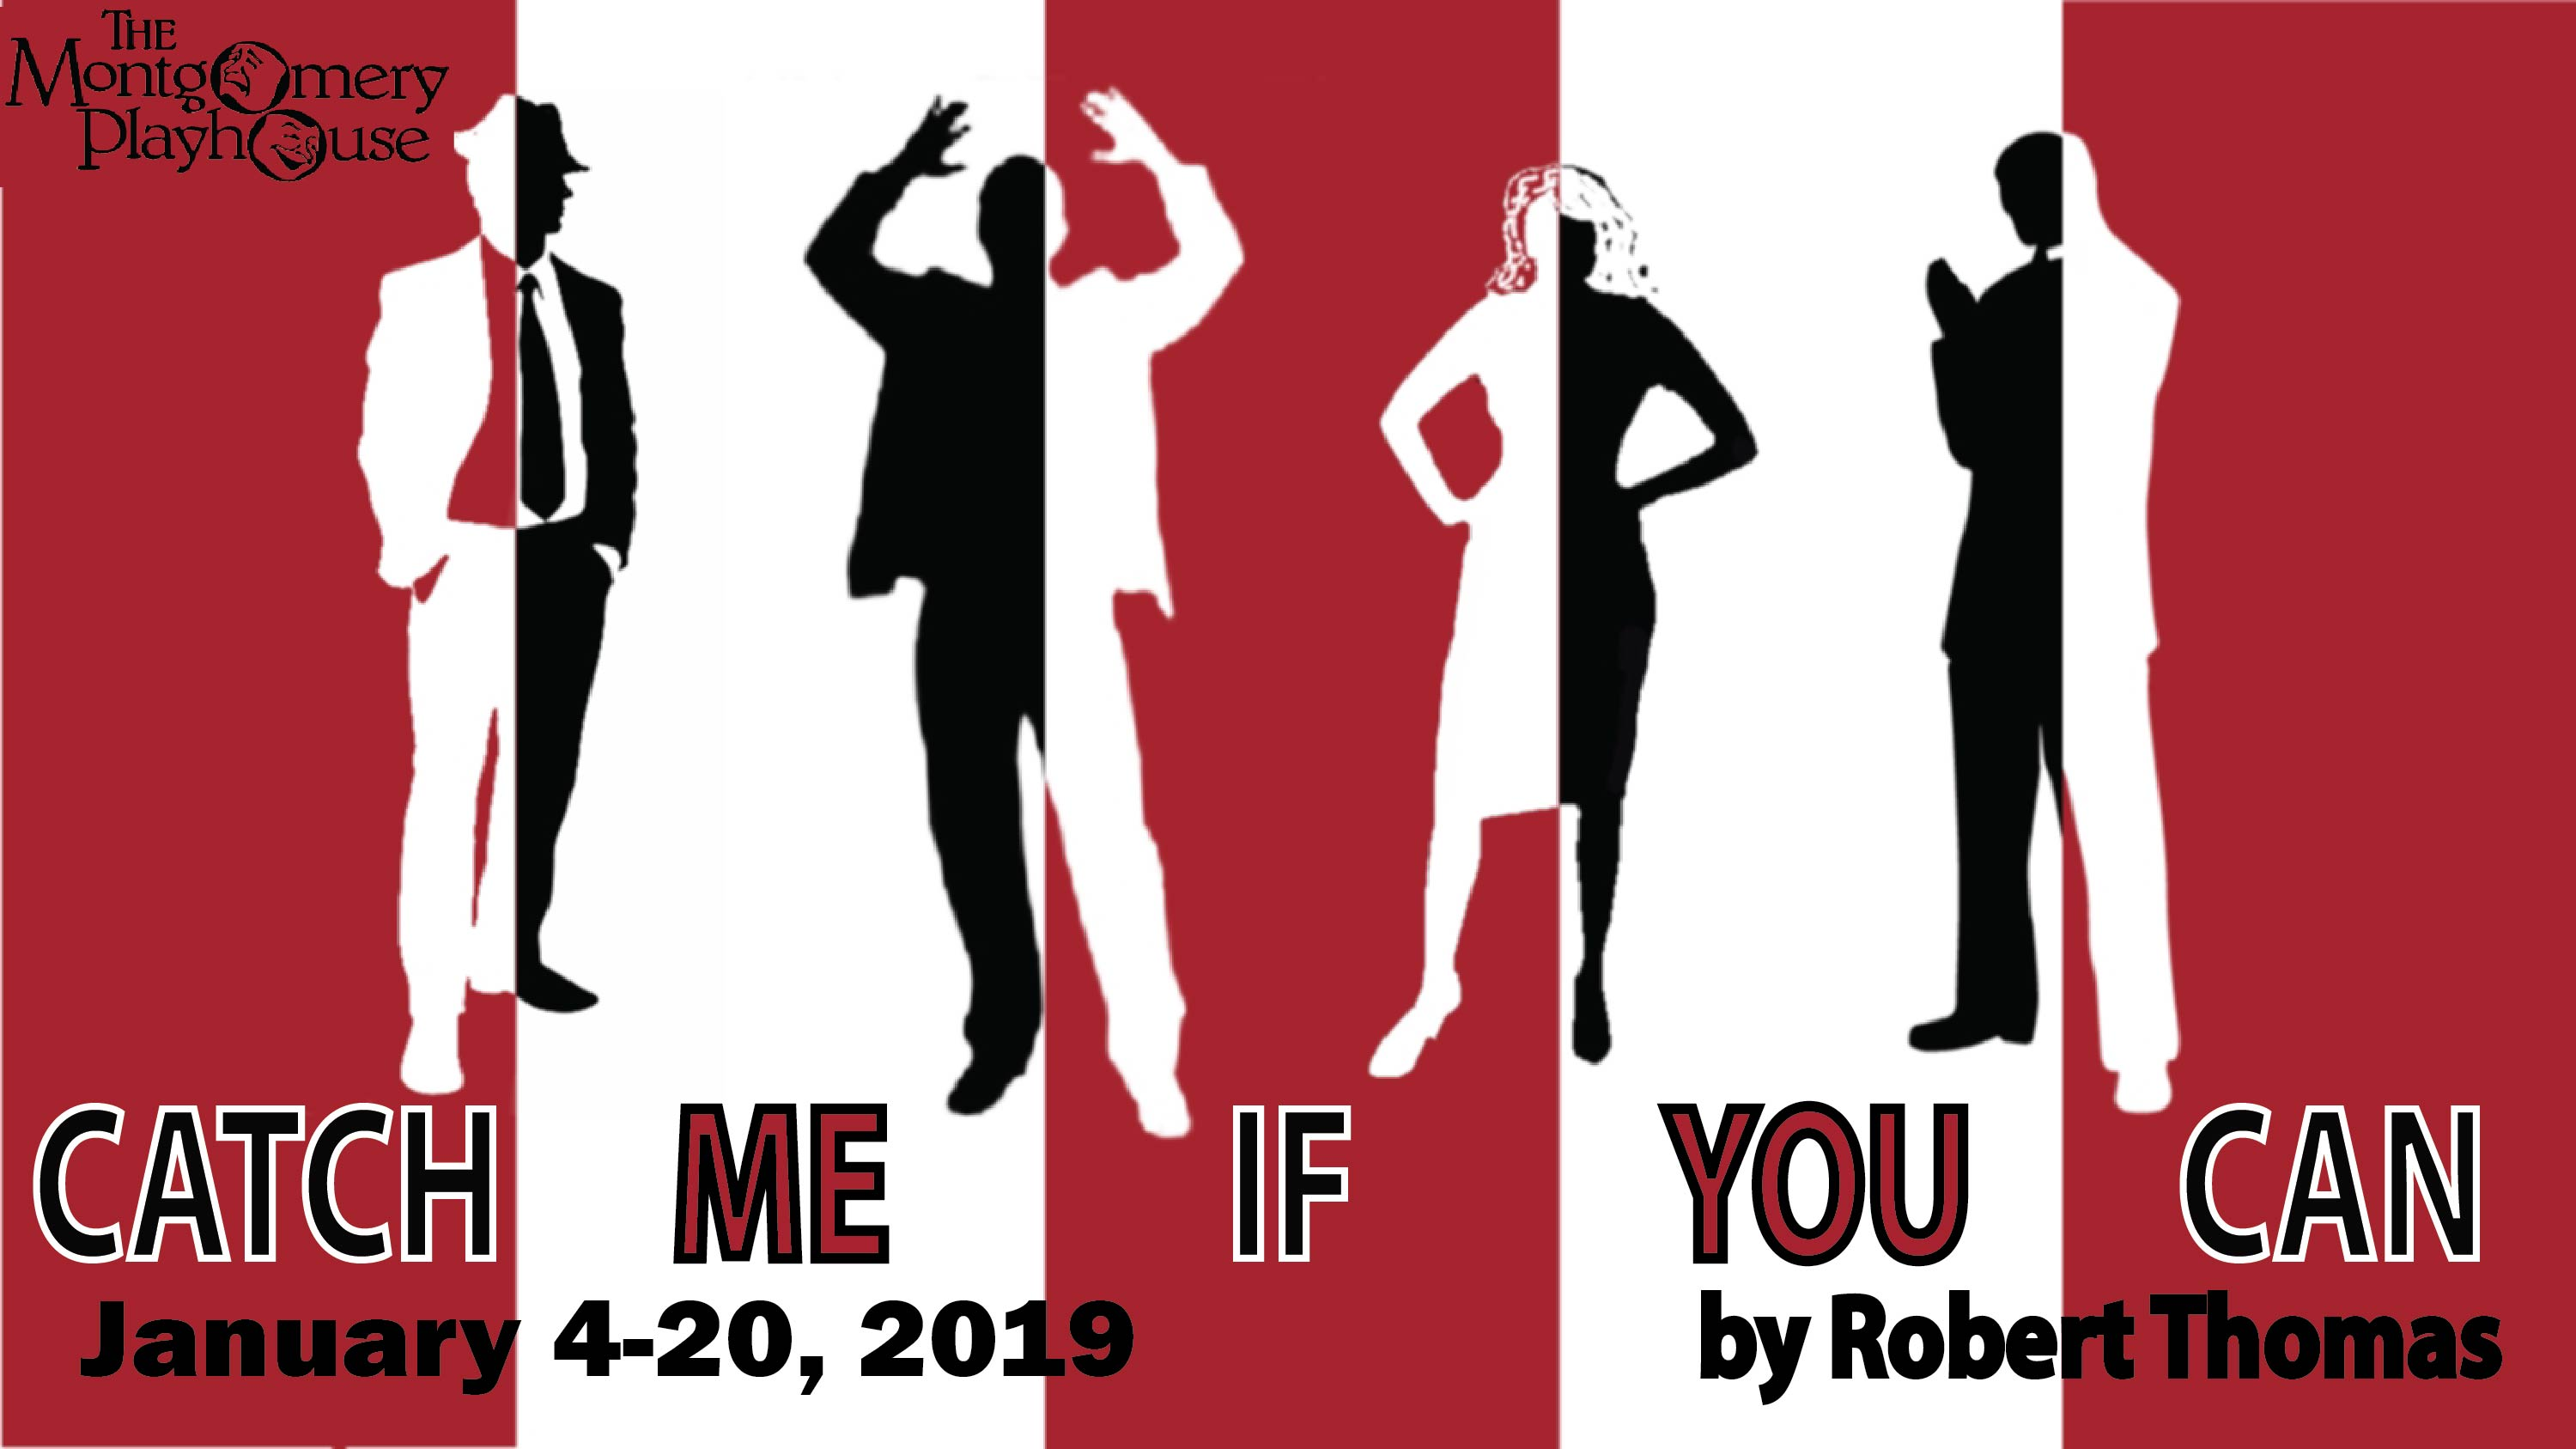 Catch Me If You Can The Montgomery Playhouse